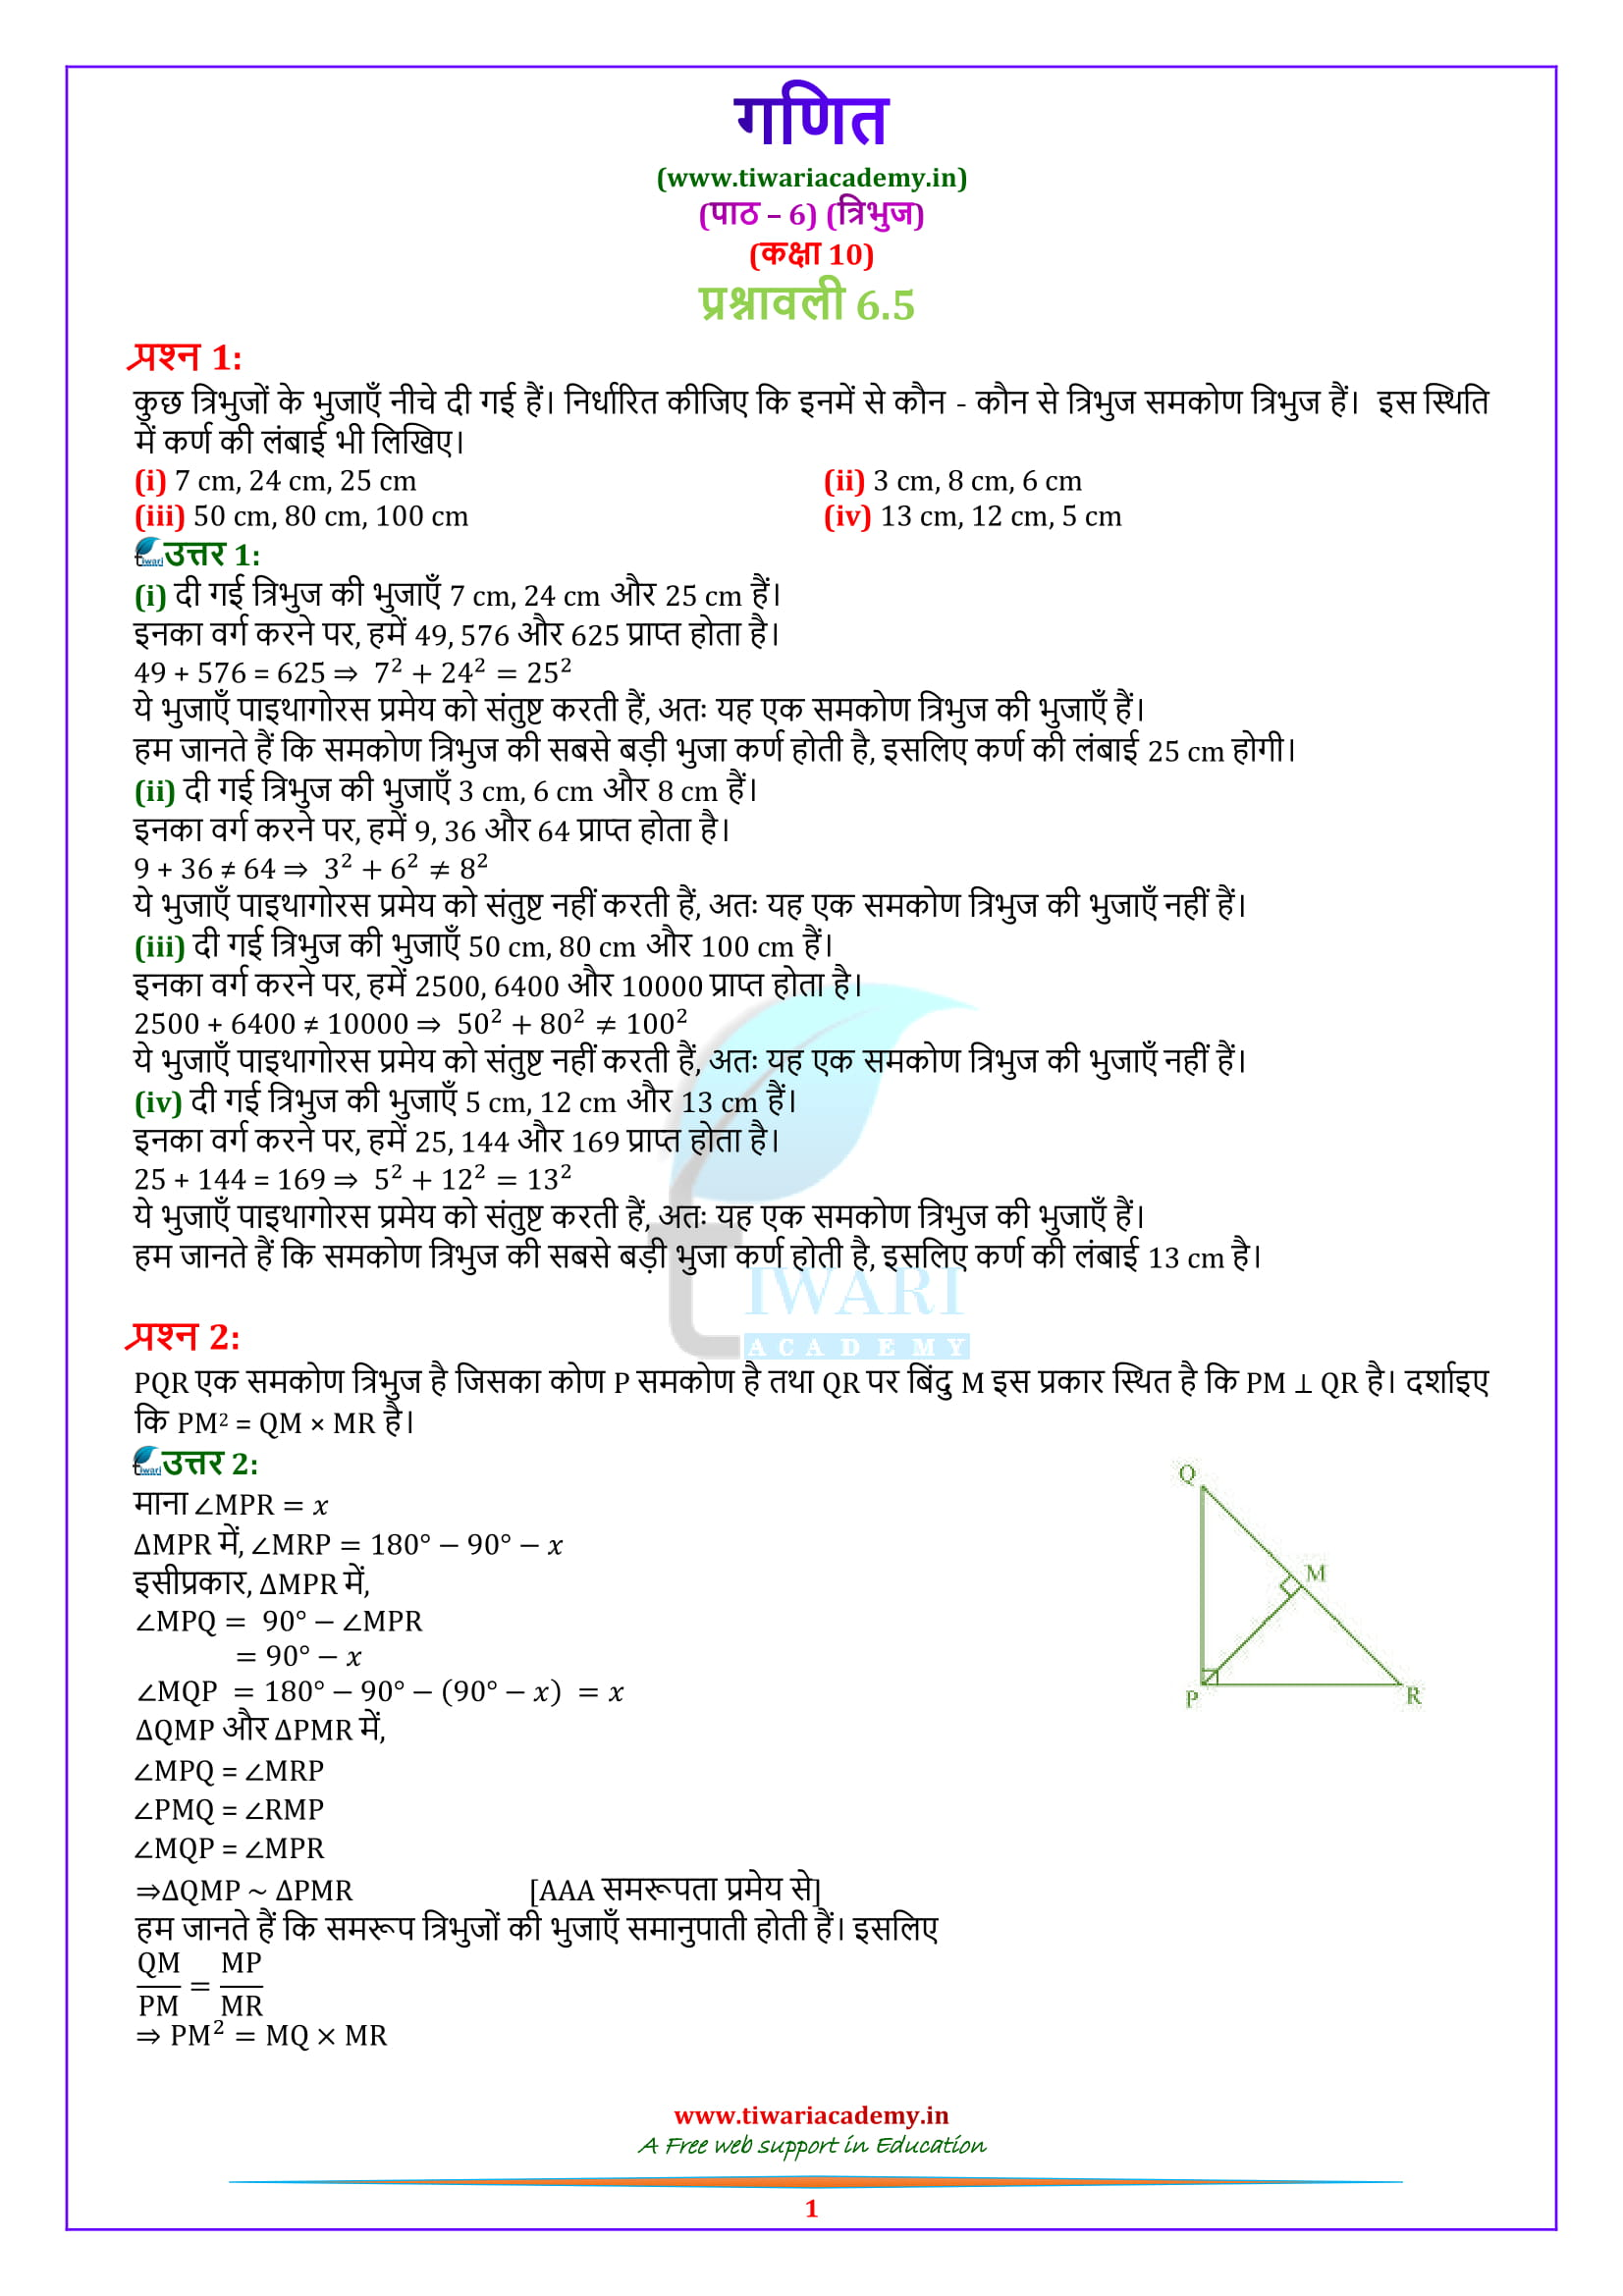 Class 10 Maths Exercise 6.5 Solutions in Hindi medium